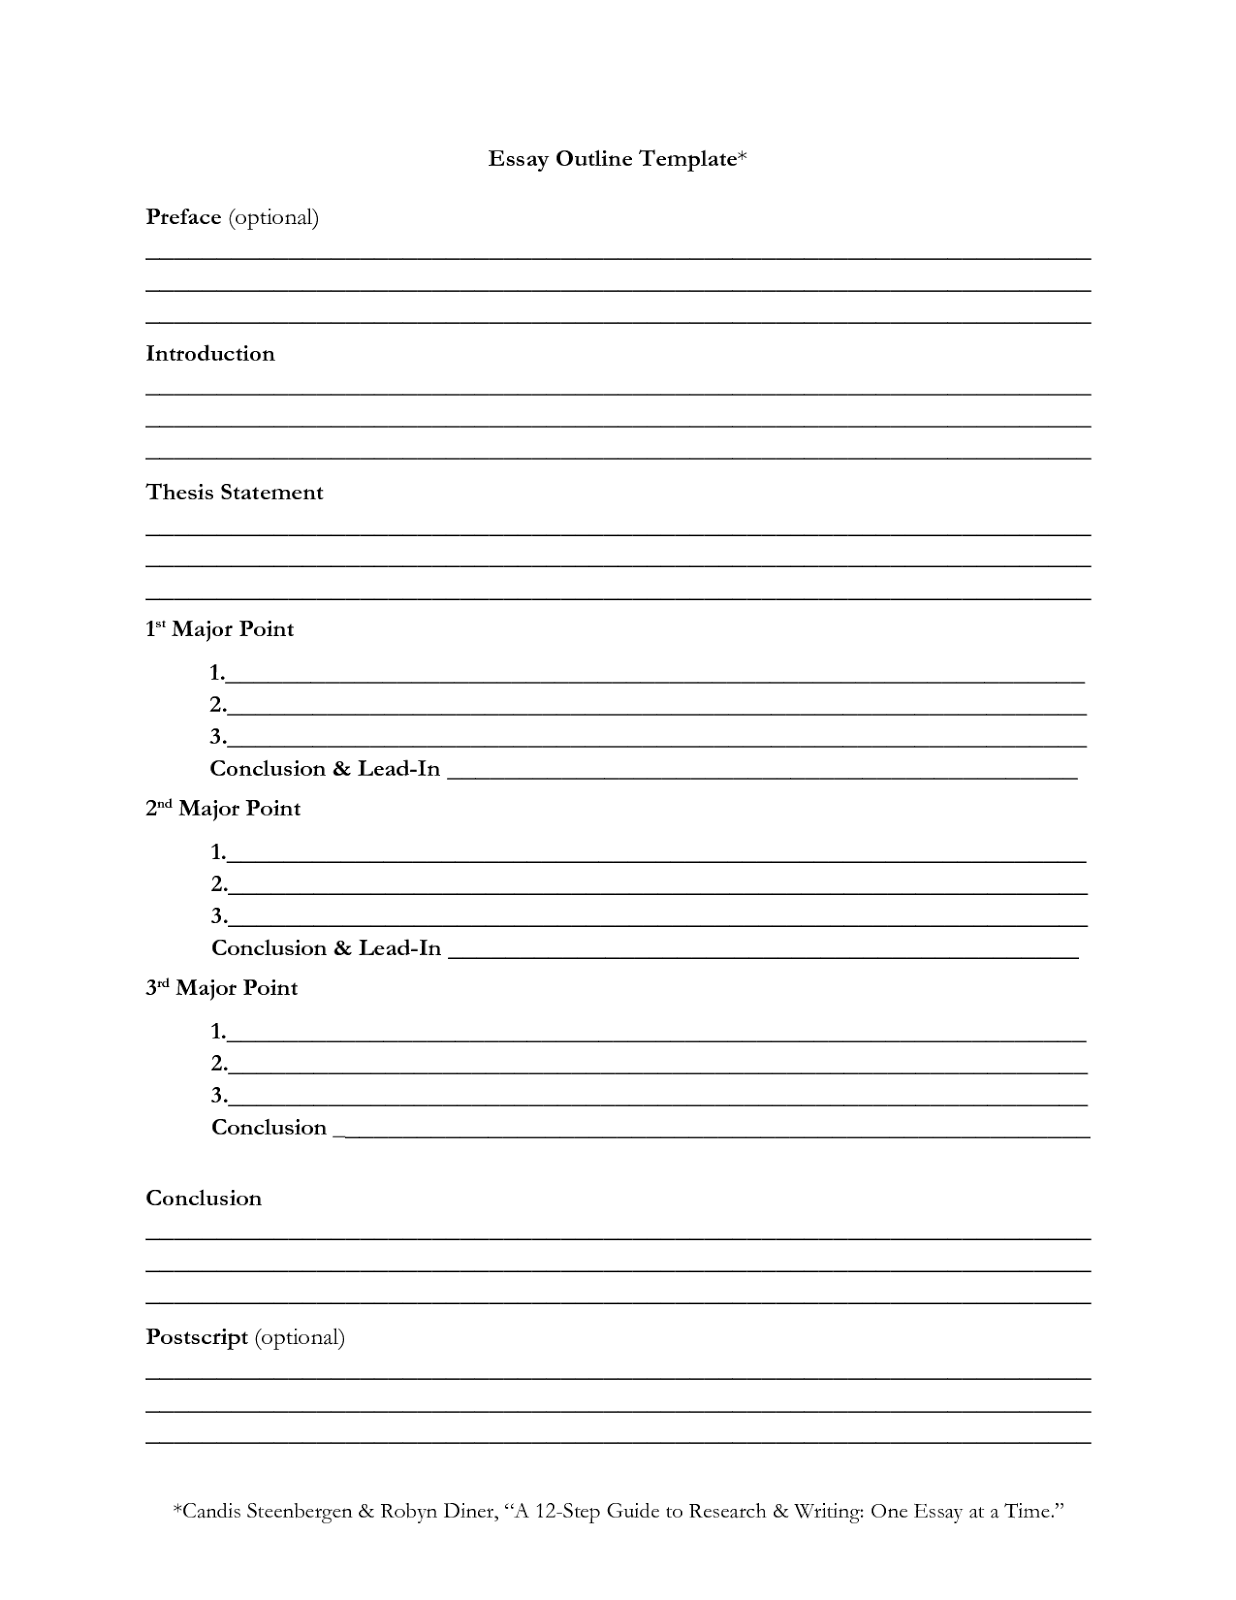 021 Outlinetemplate English Research Paper Outline Beautiful Sample Full